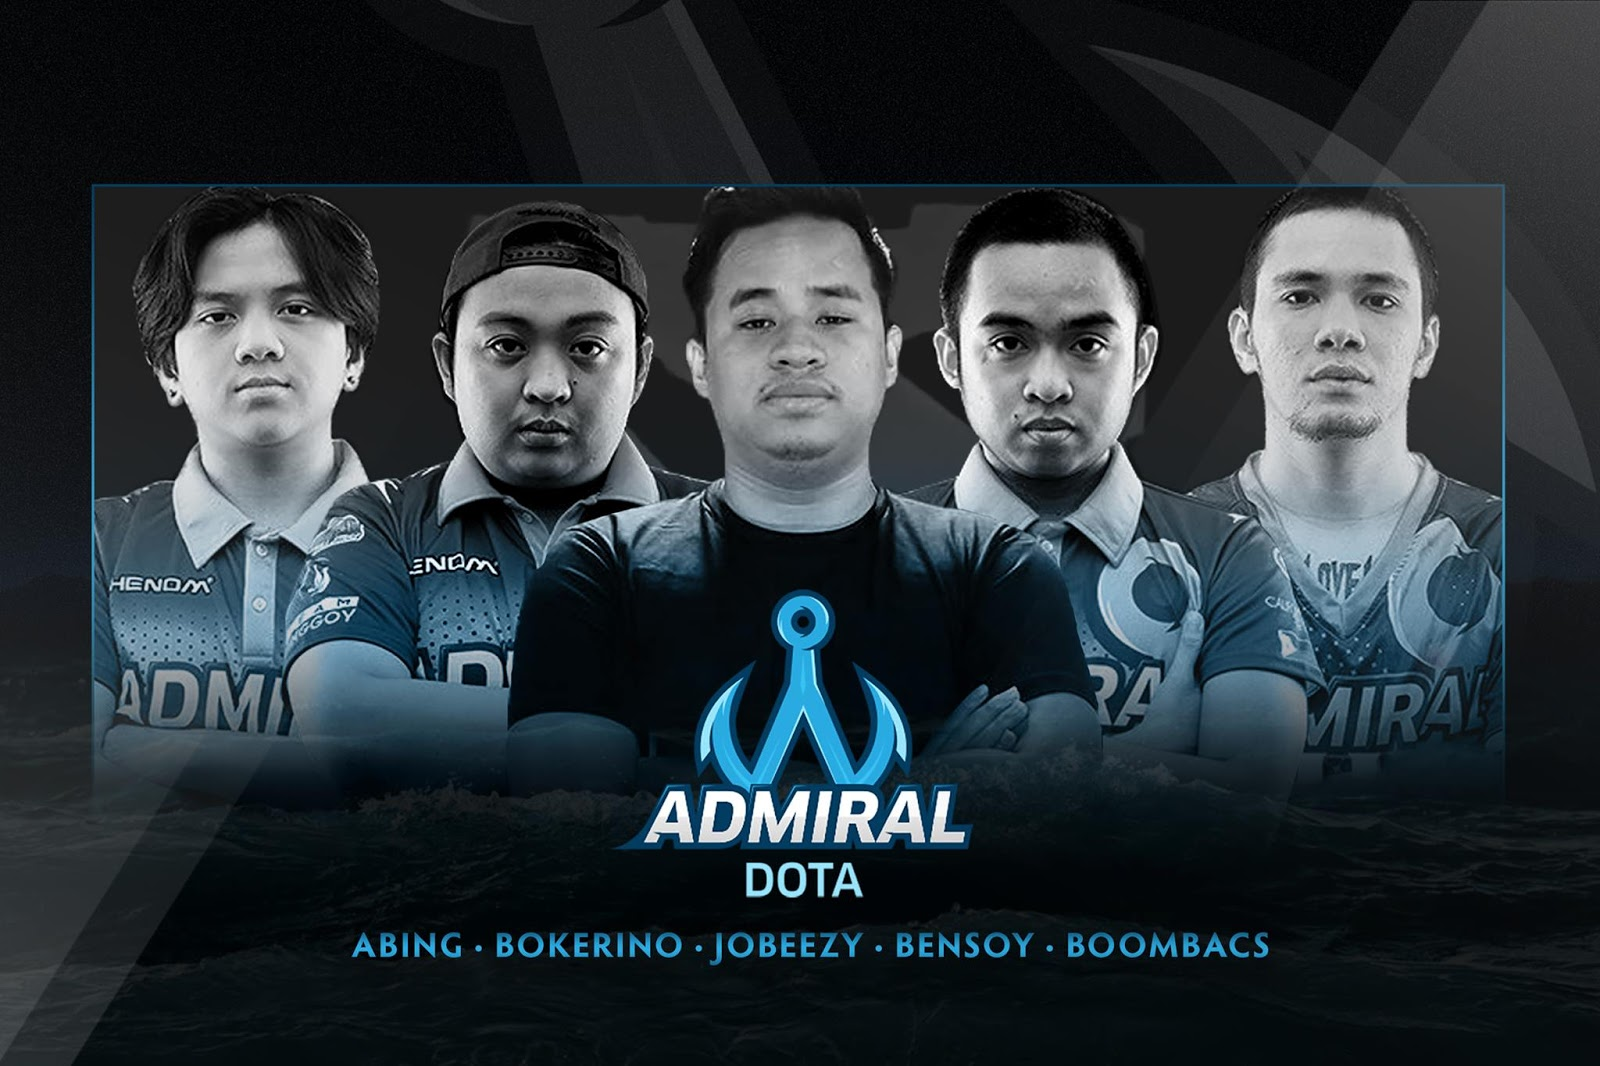 Team Admiral new player lineup with Benhur